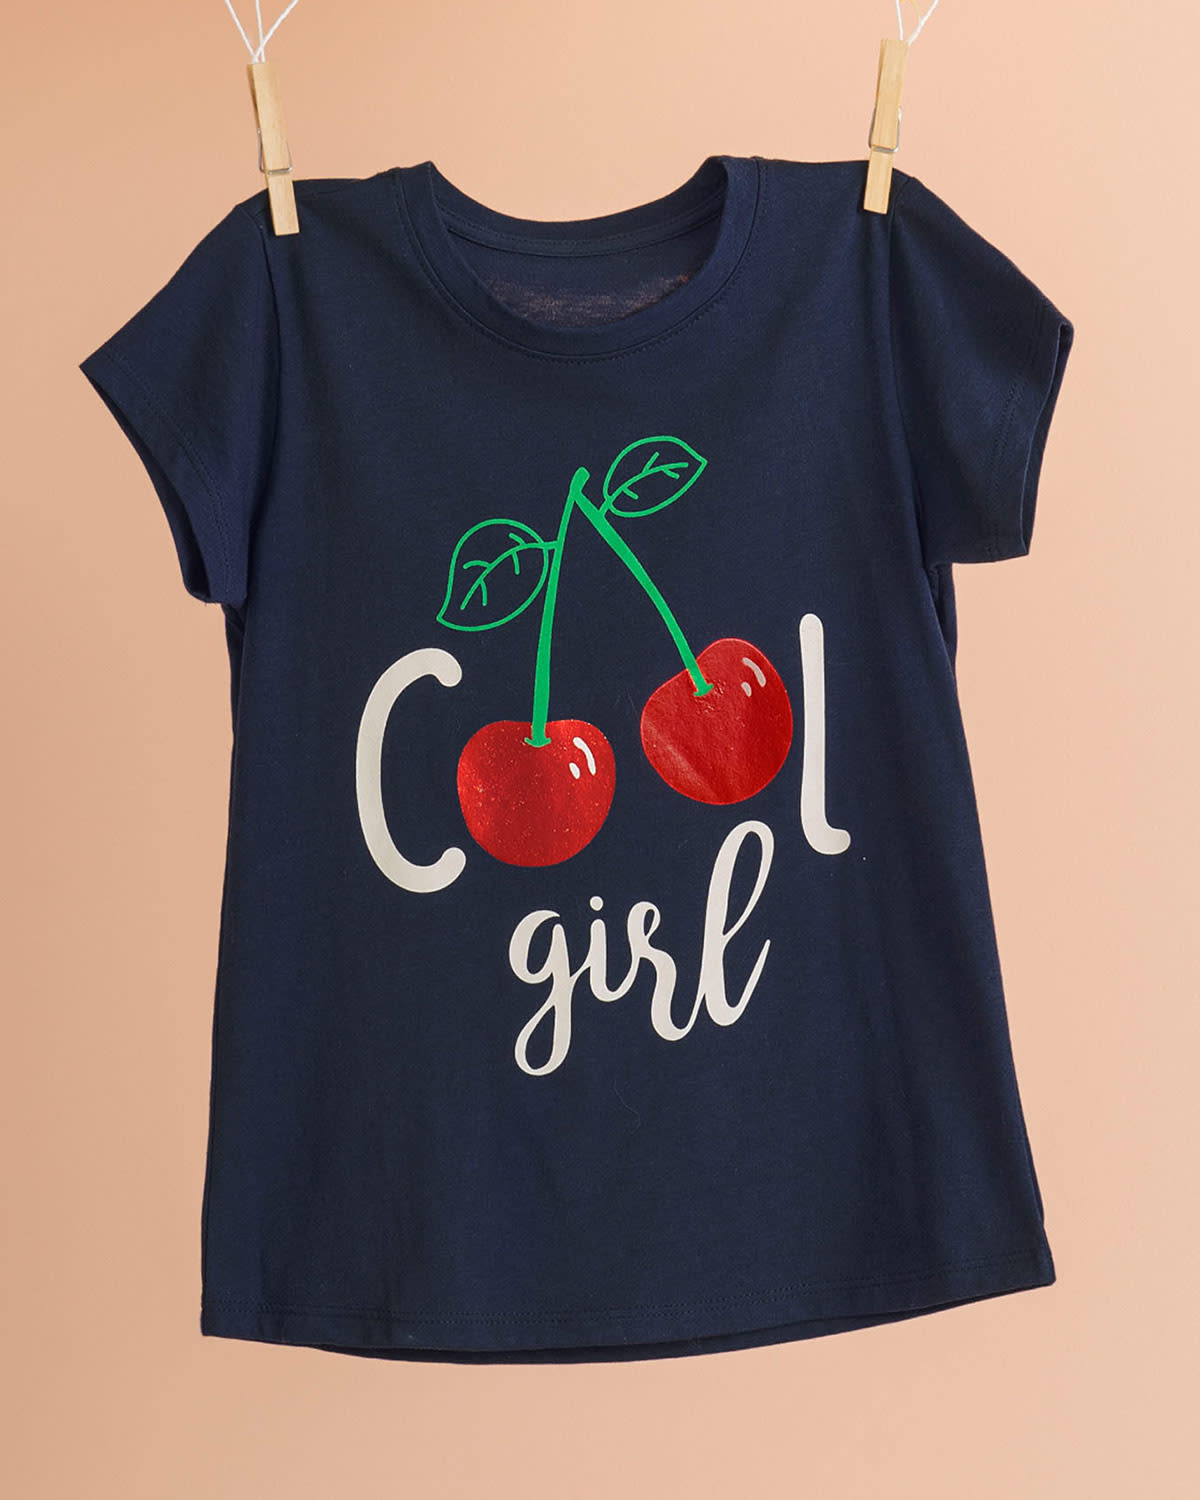 Cherry Graphic Tee for Girls